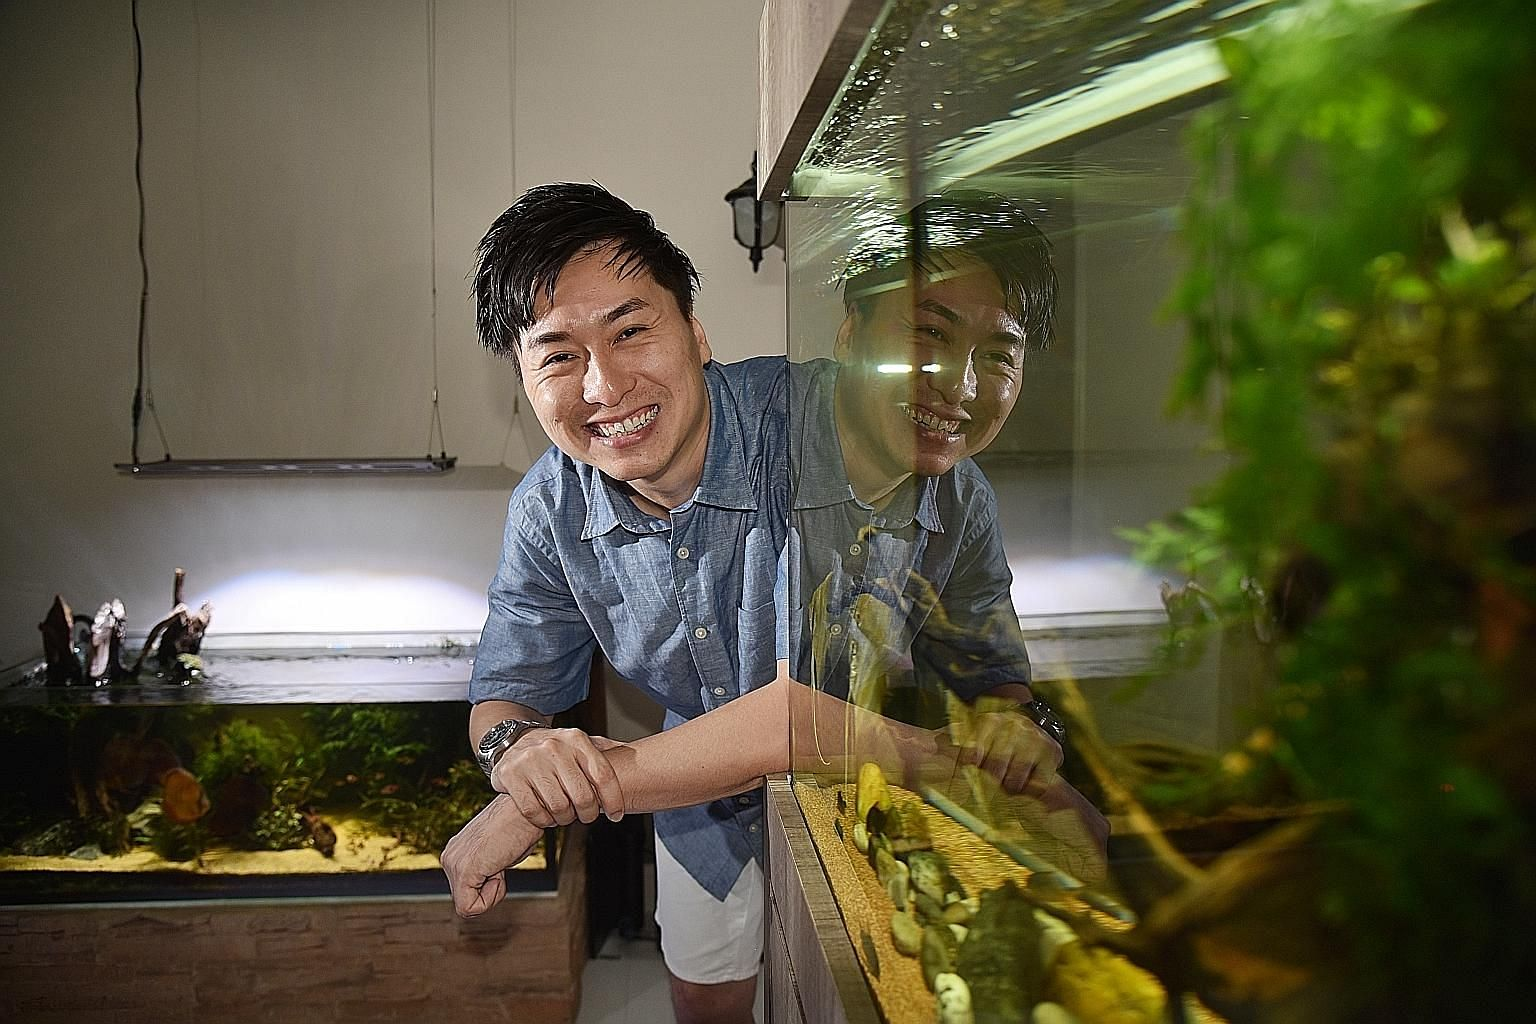 Laboratory technician and aquascaping hobbyist Alvin Wee has three aquascaped tanks, including this one in his living room.